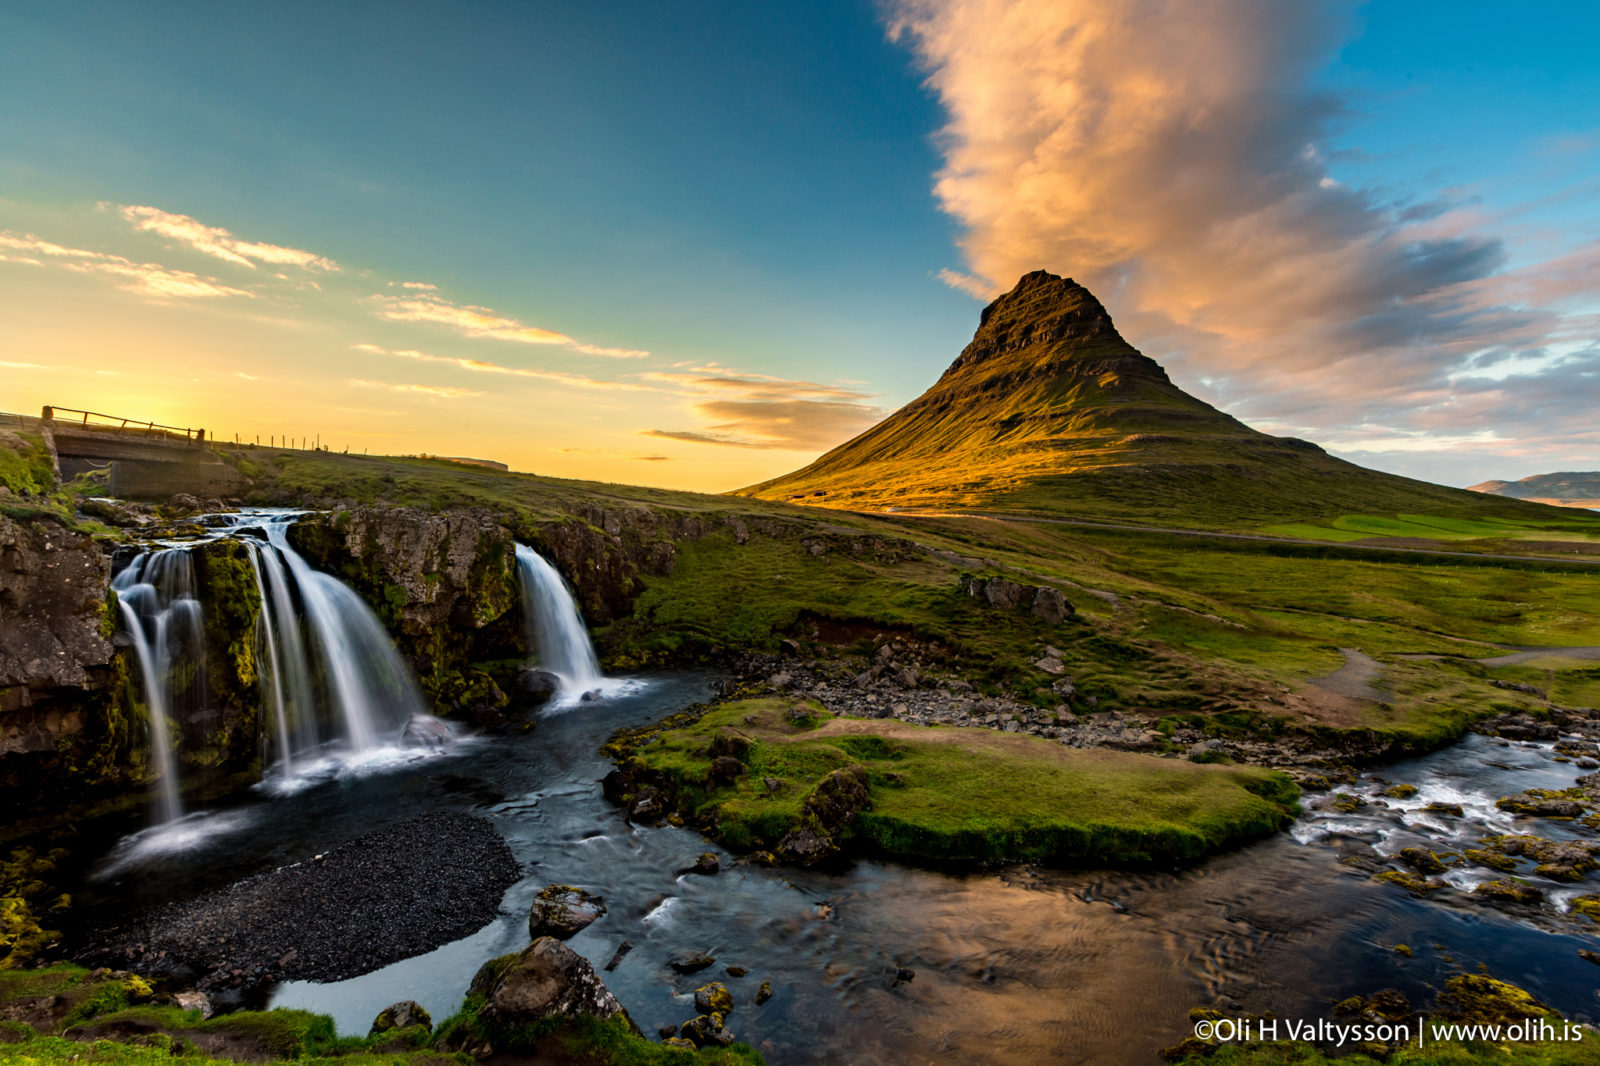 Kirkjufell - Outdoor Photographer: www.outdoorphotographer.com/photo-contests/great-outdoors/entry...